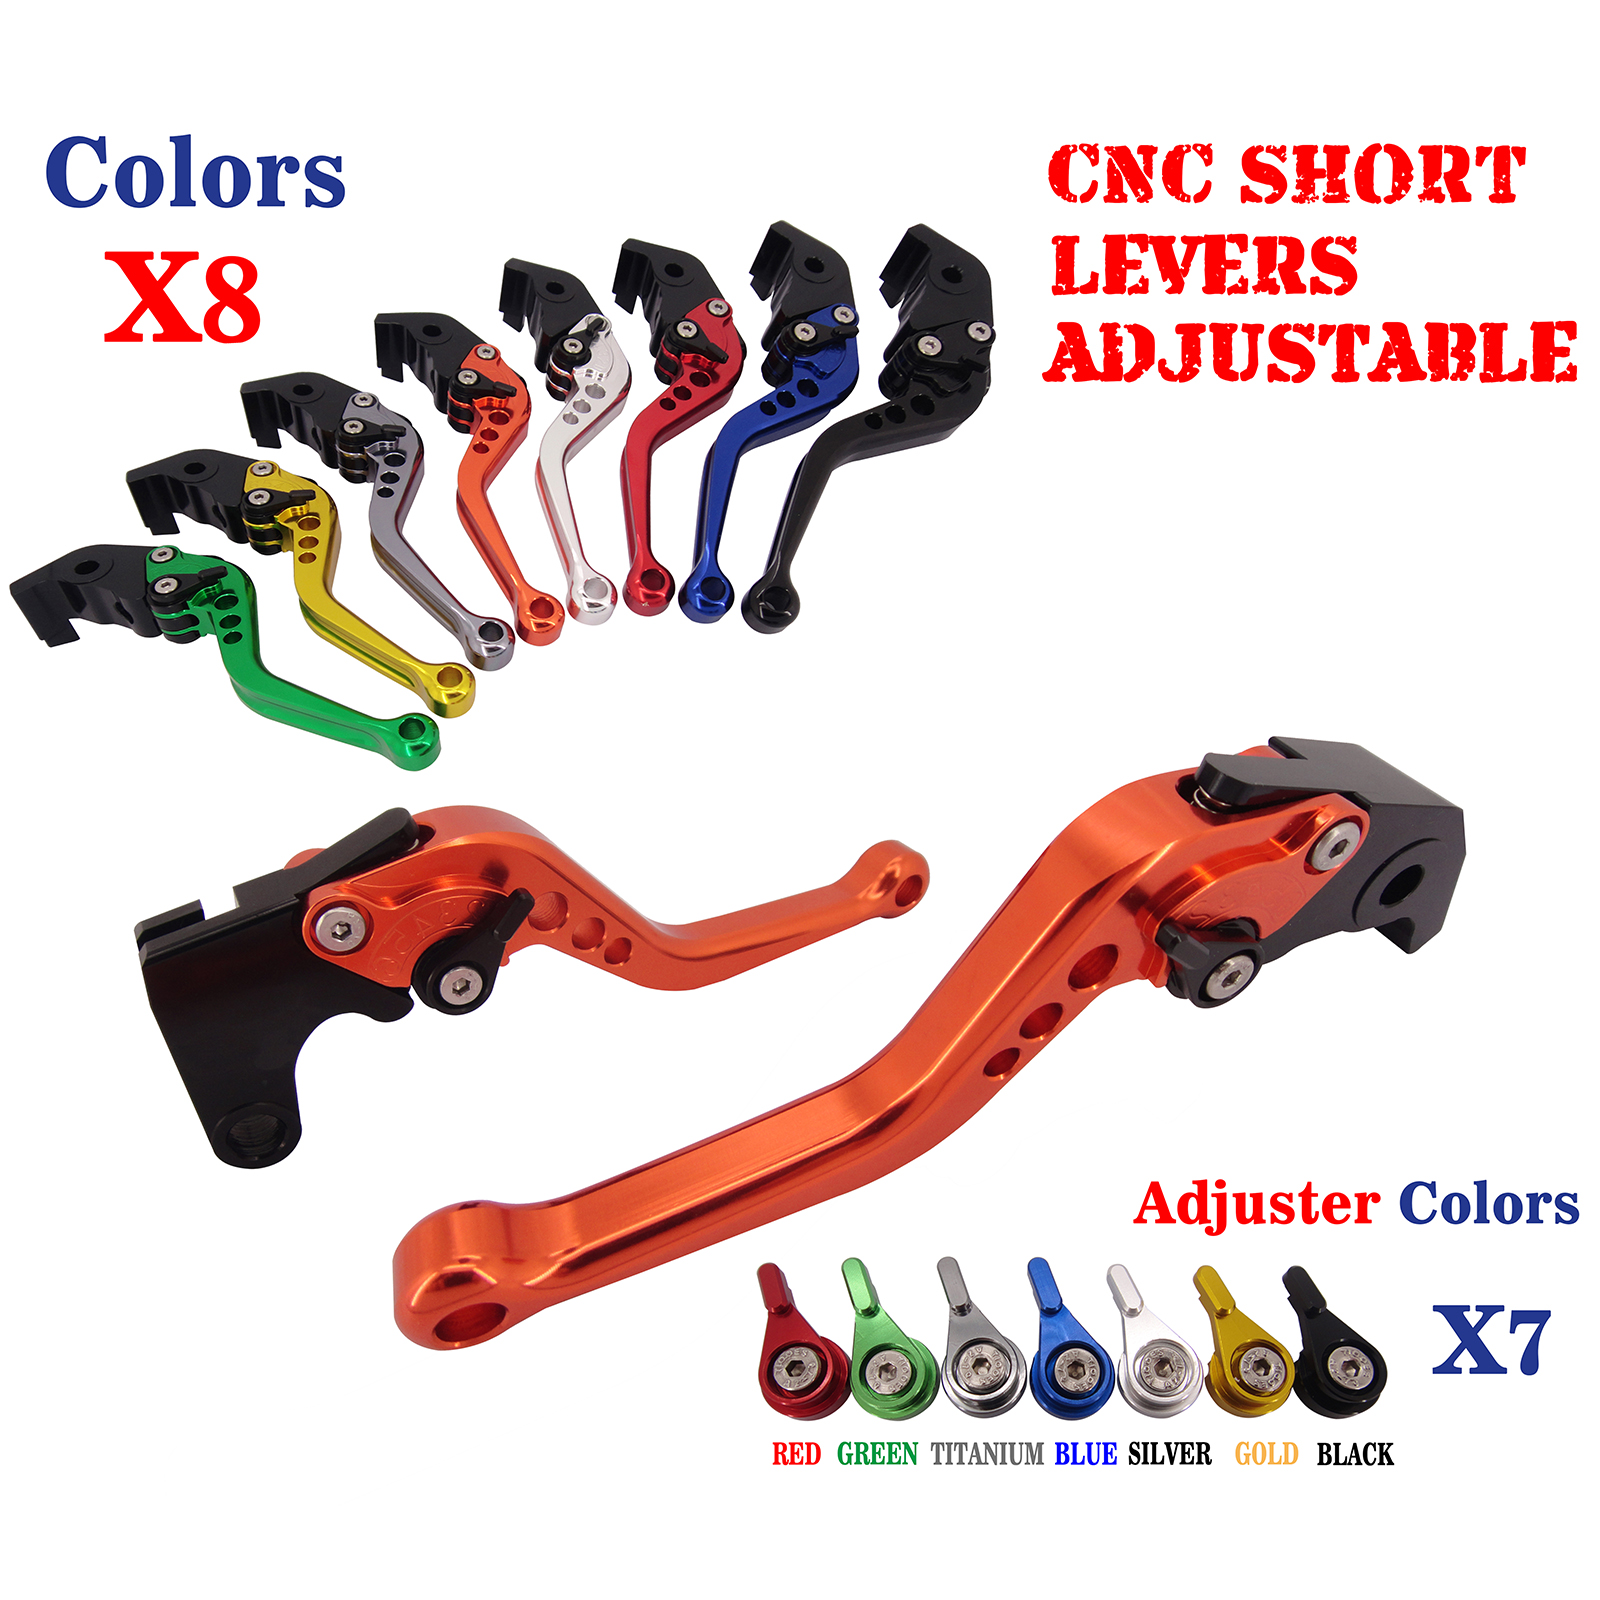 CNC Short Adjustable Brake Clutch Levers For Kawasaki Z1000 2007 2008 2009 2010 2011 2012 2013 2014 Motorbike Brakes billet adjustable long folding brake clutch levers for kawasaki z750 z 750 2007 2008 2009 2010 2011 07 11 z800 z 800 2013 2014